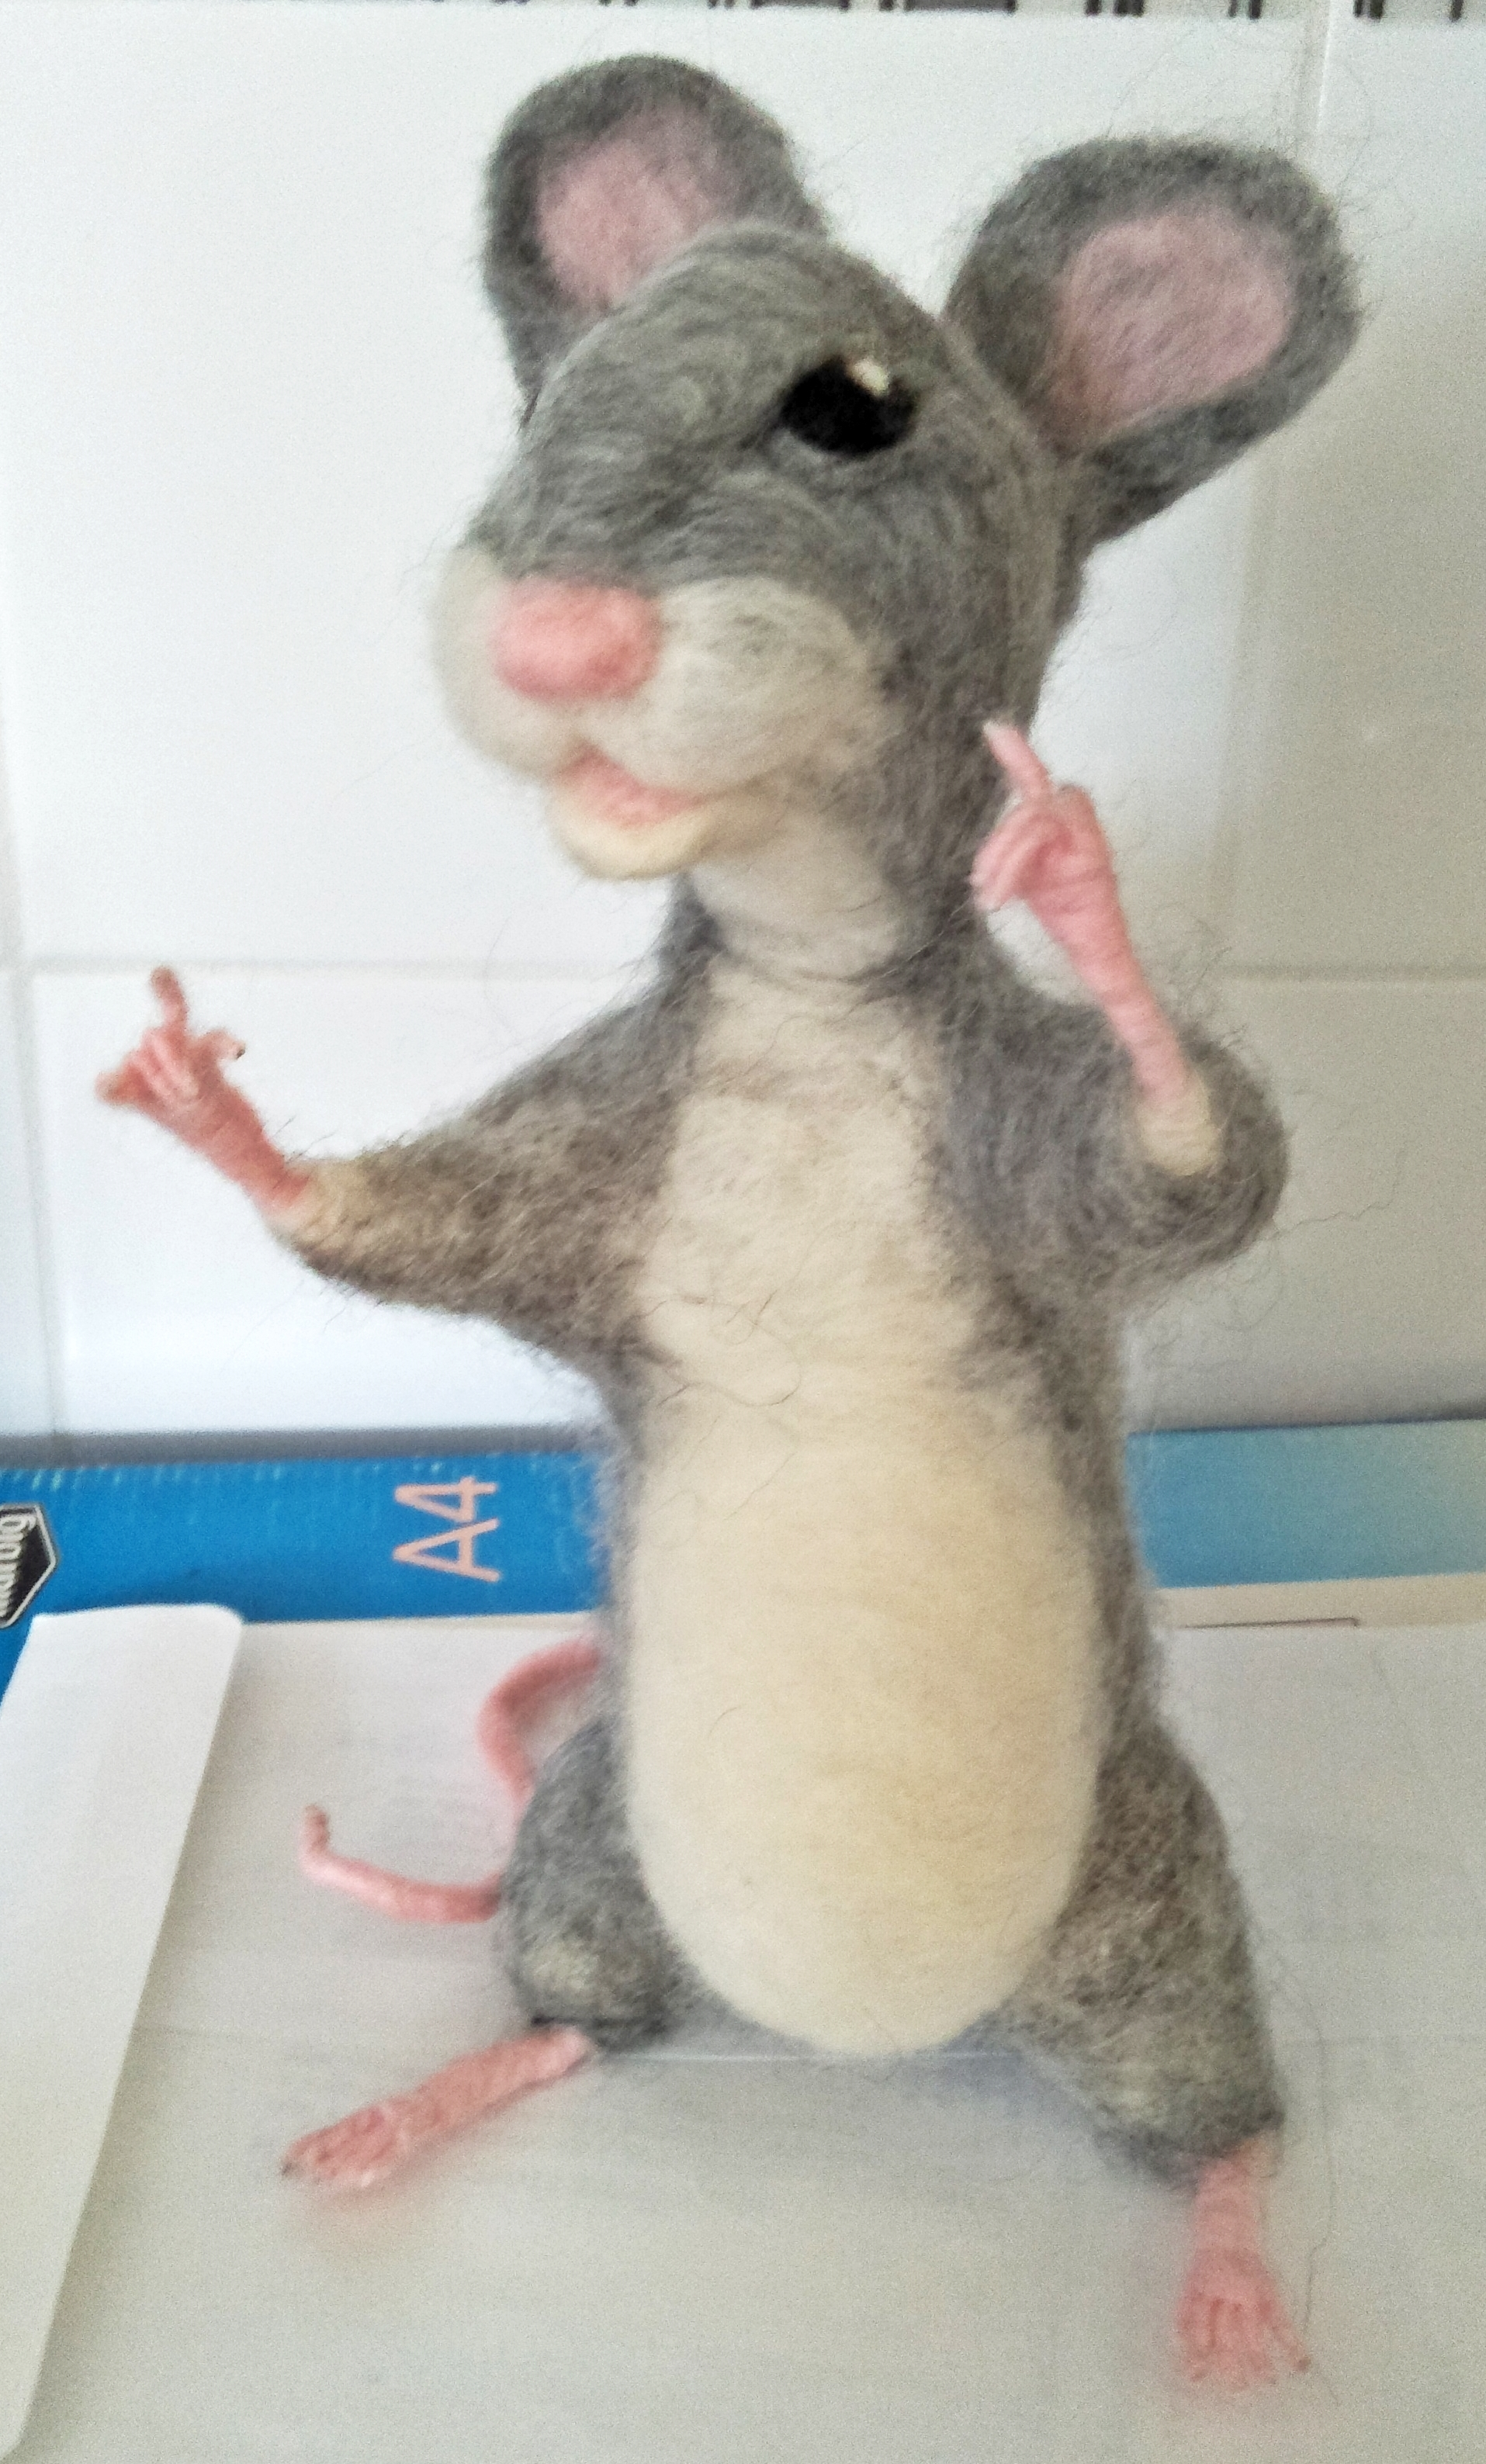 Richard rat or mouse ??